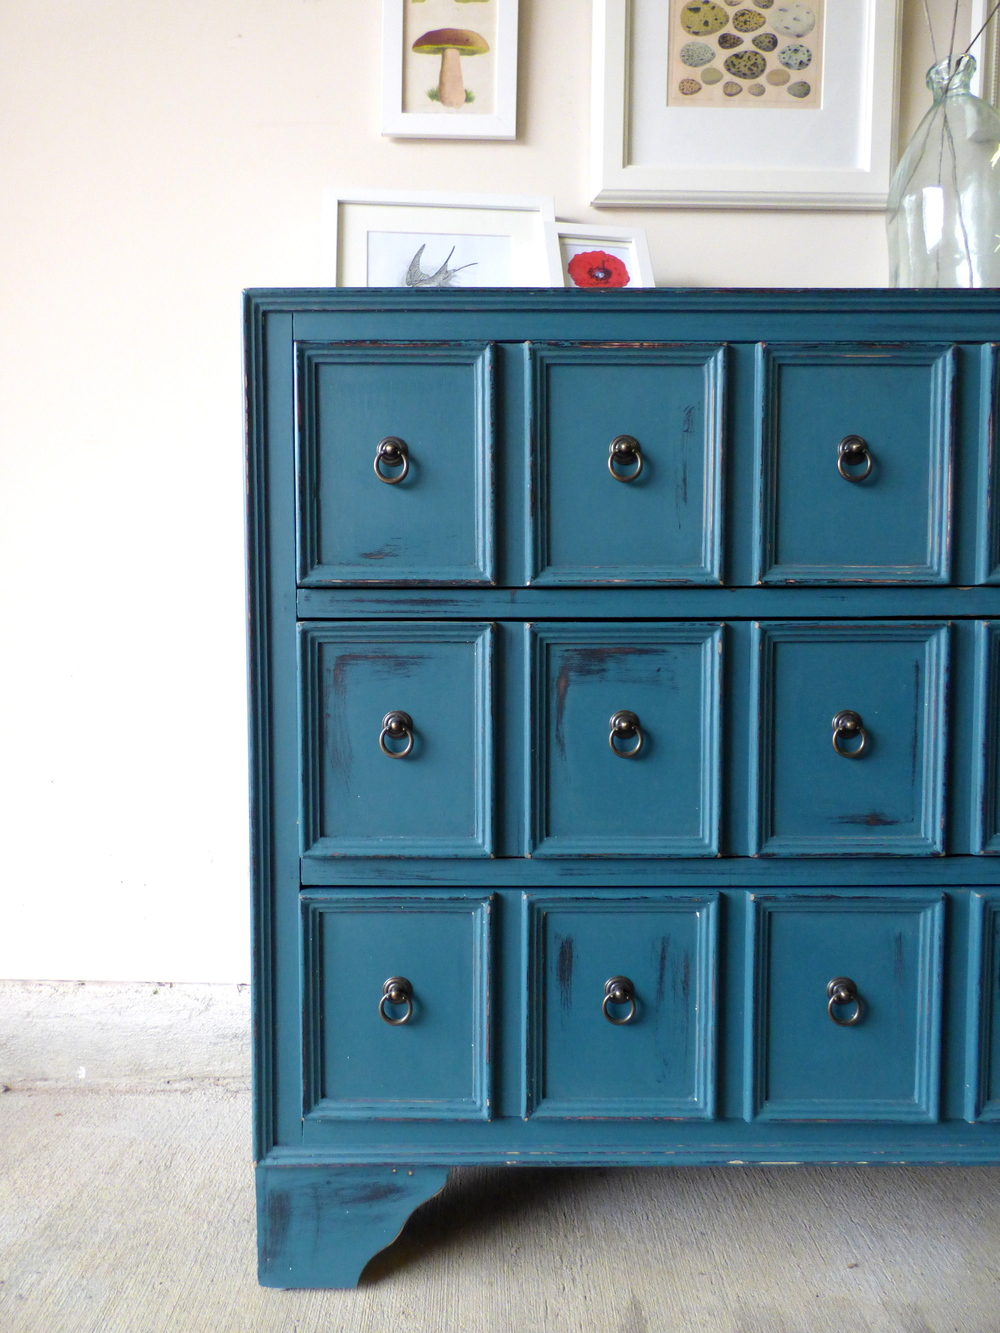 apothecary style furniture. But Once-in-a-while, Only For The Most Spectacular Of Clients, Do You Roll Up Your Sleeve And Distress Heck Out Something To Get That Apothecary Style Furniture C